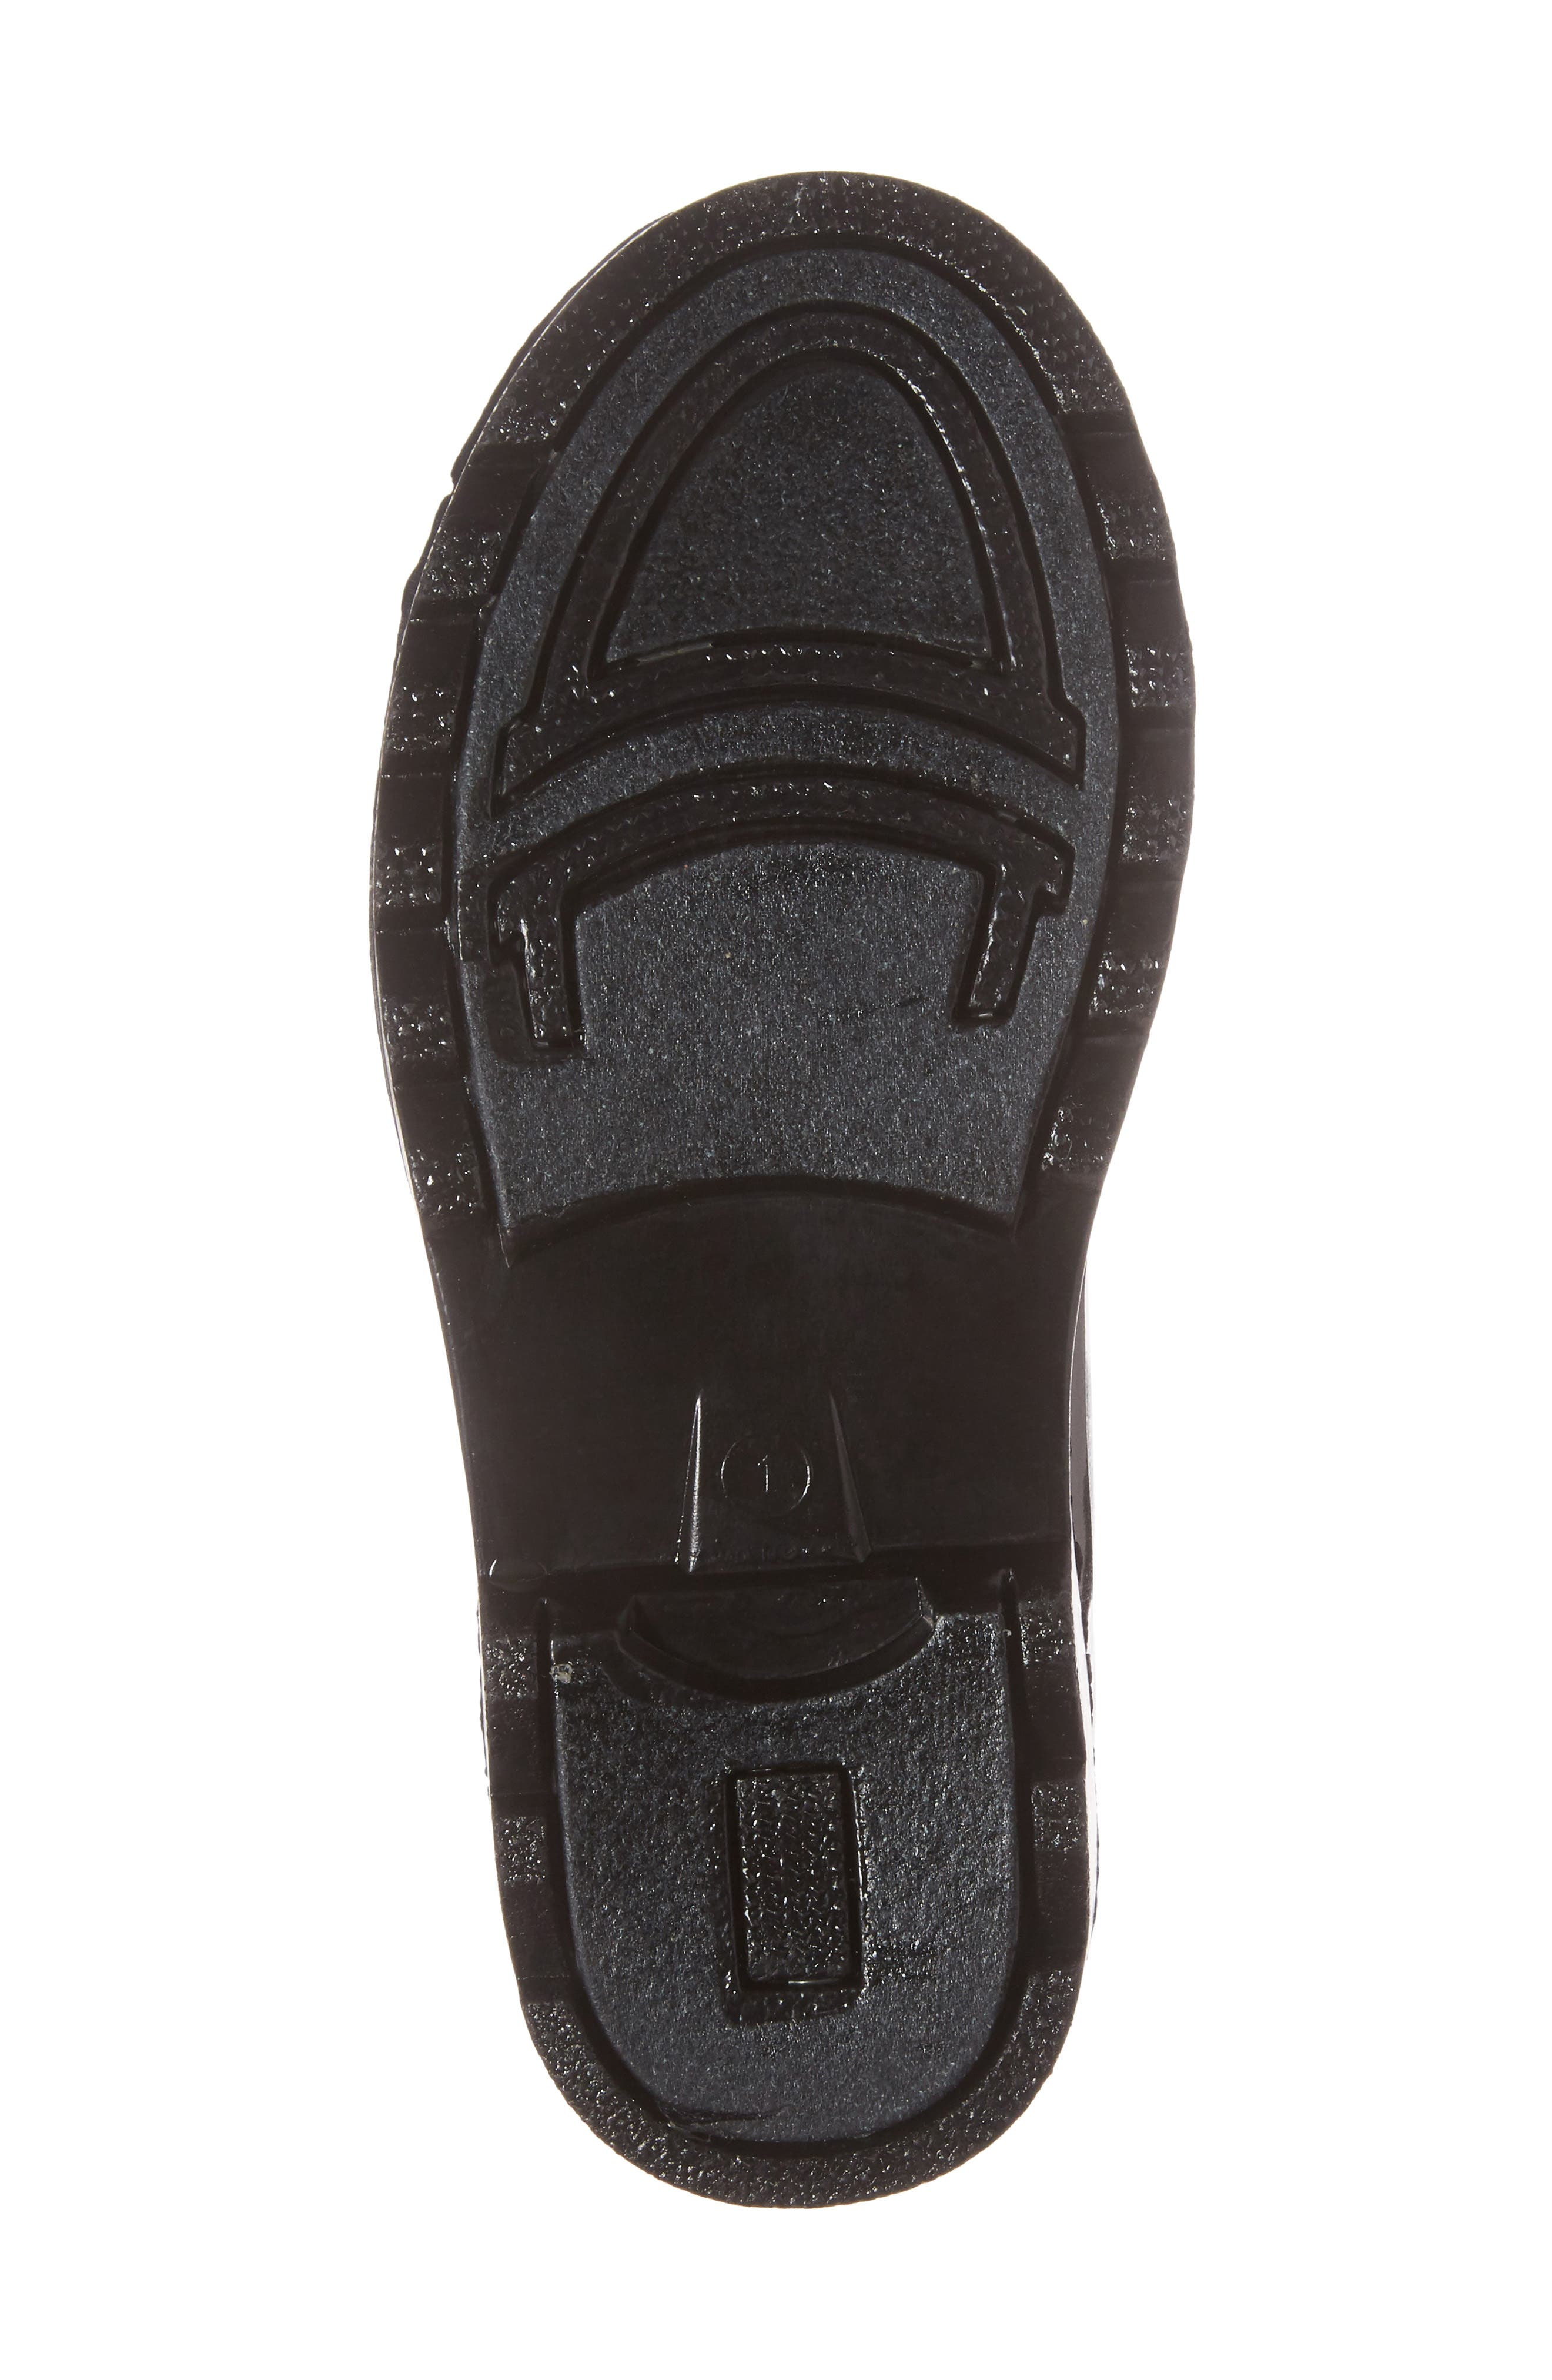 Tractor Tough Rain Boot,                             Alternate thumbnail 6, color,                             Black